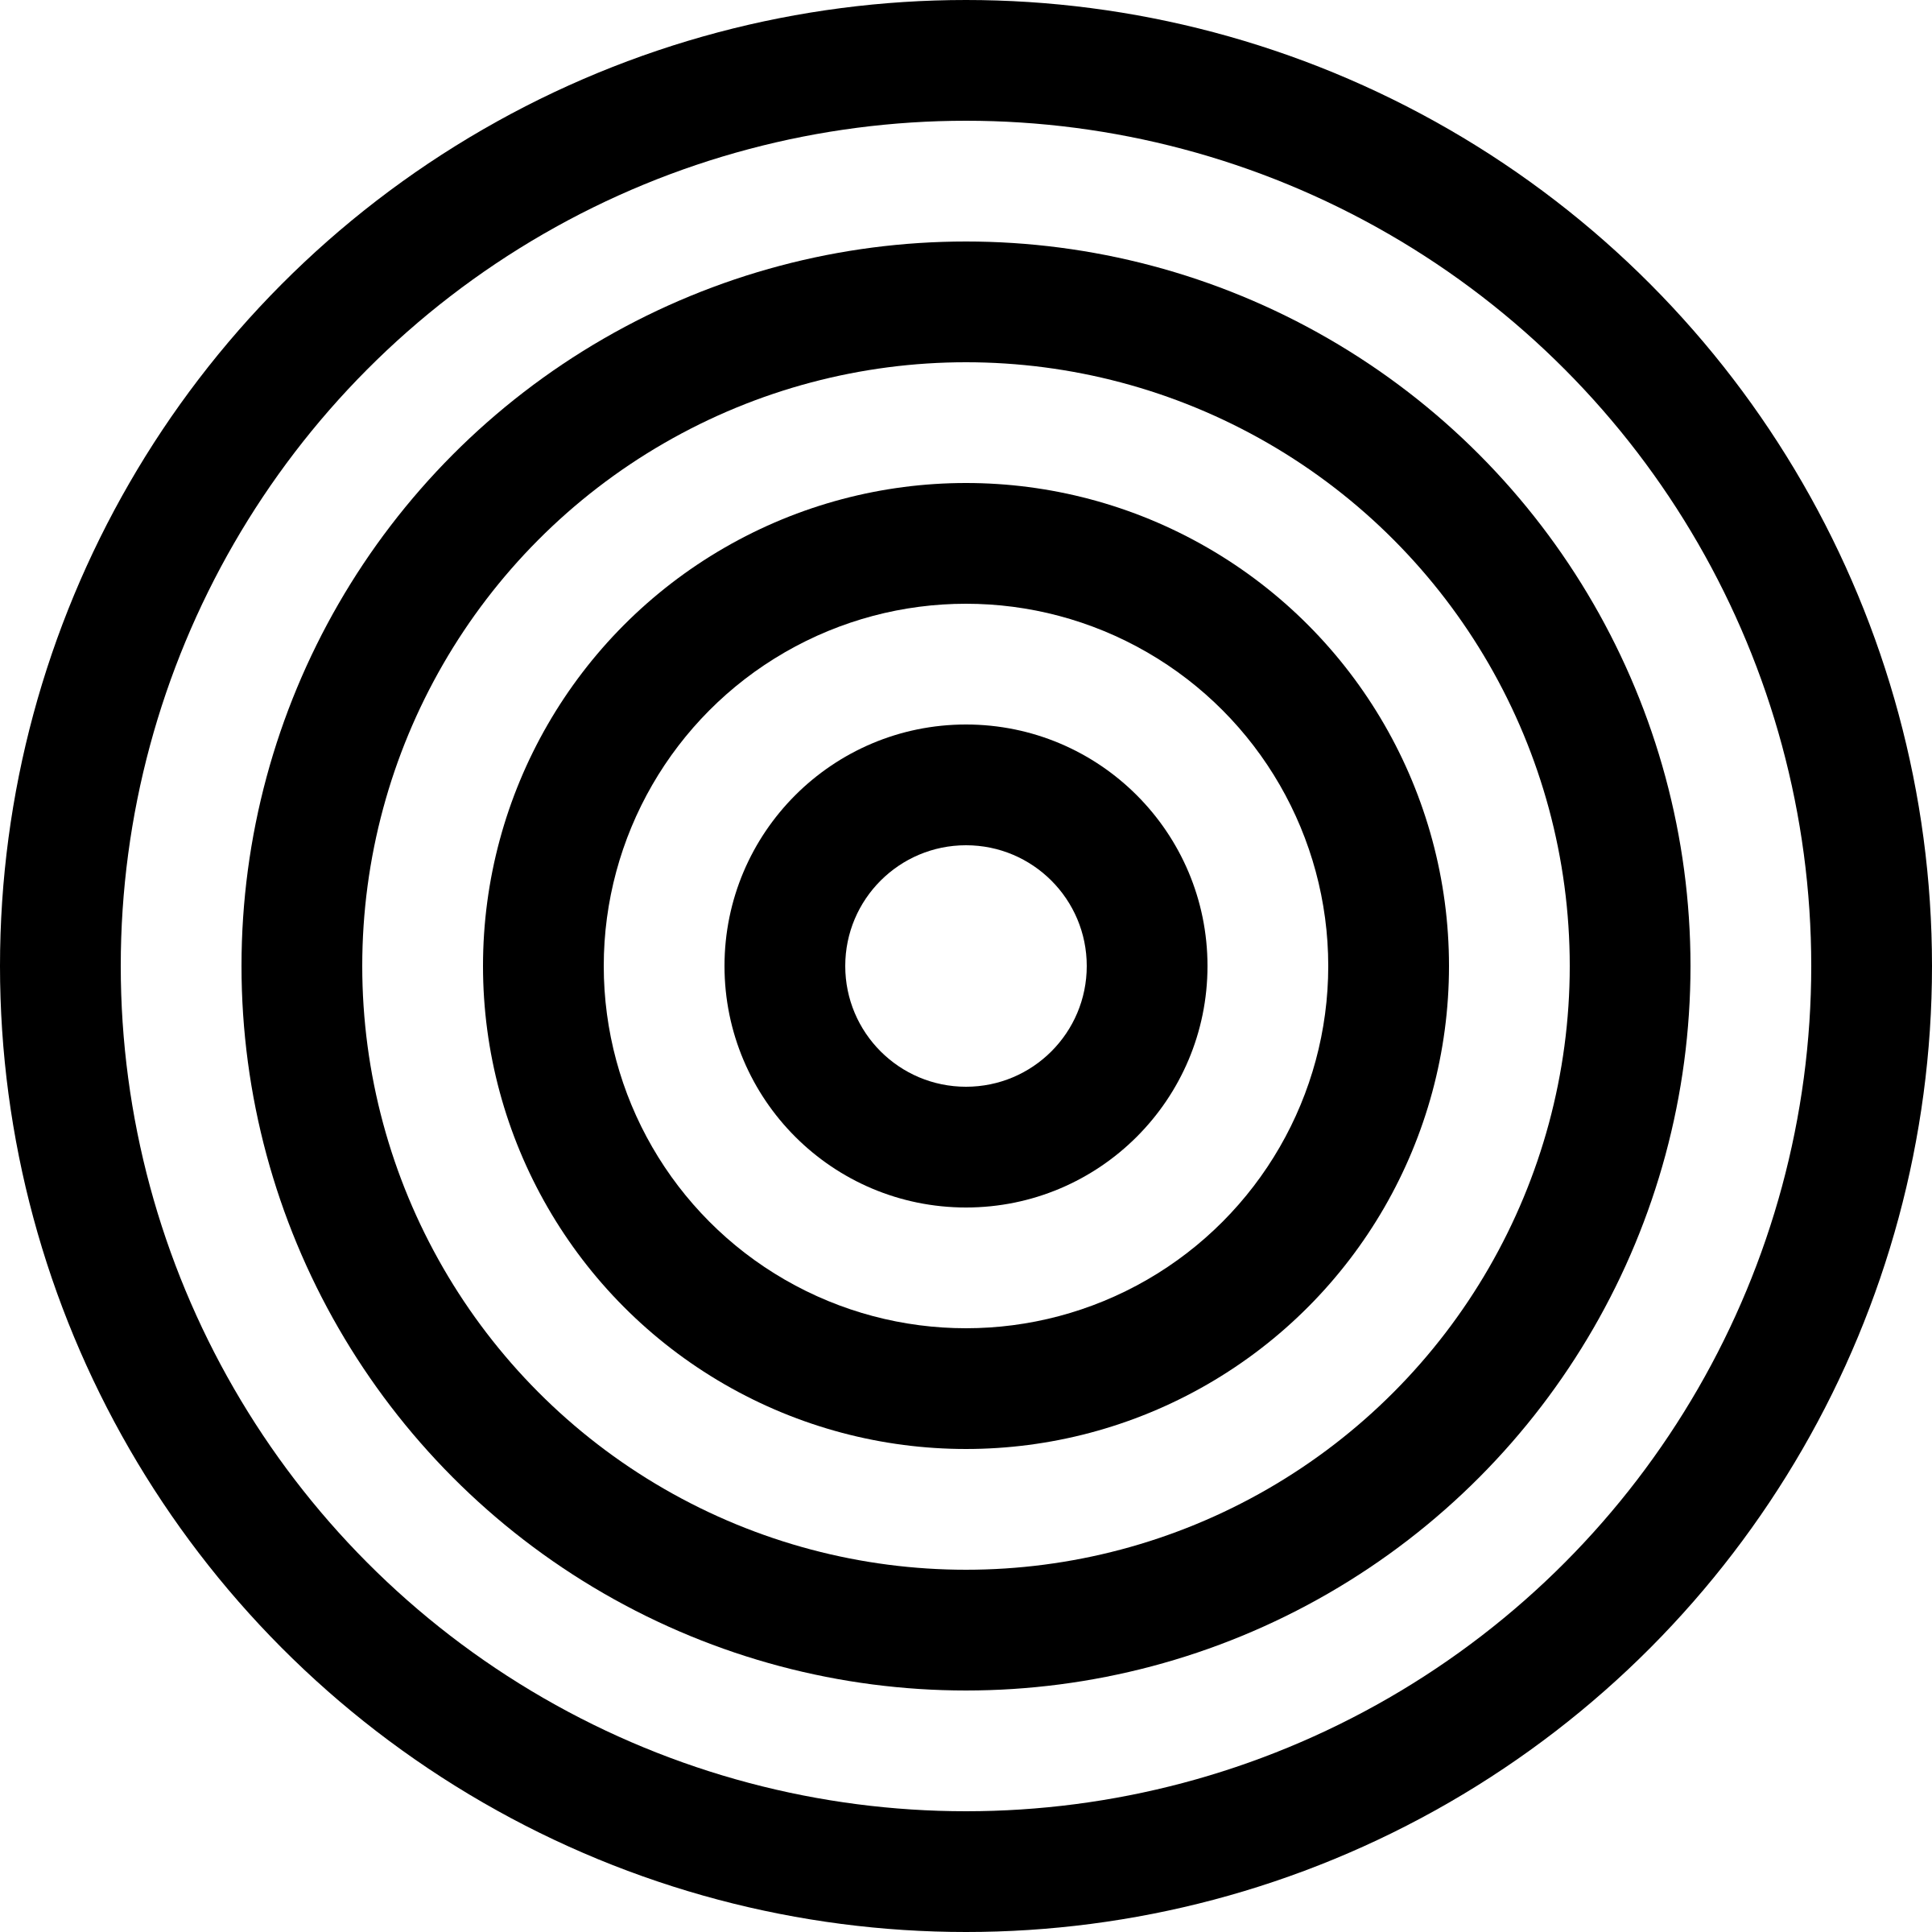 target black and white by 10binary